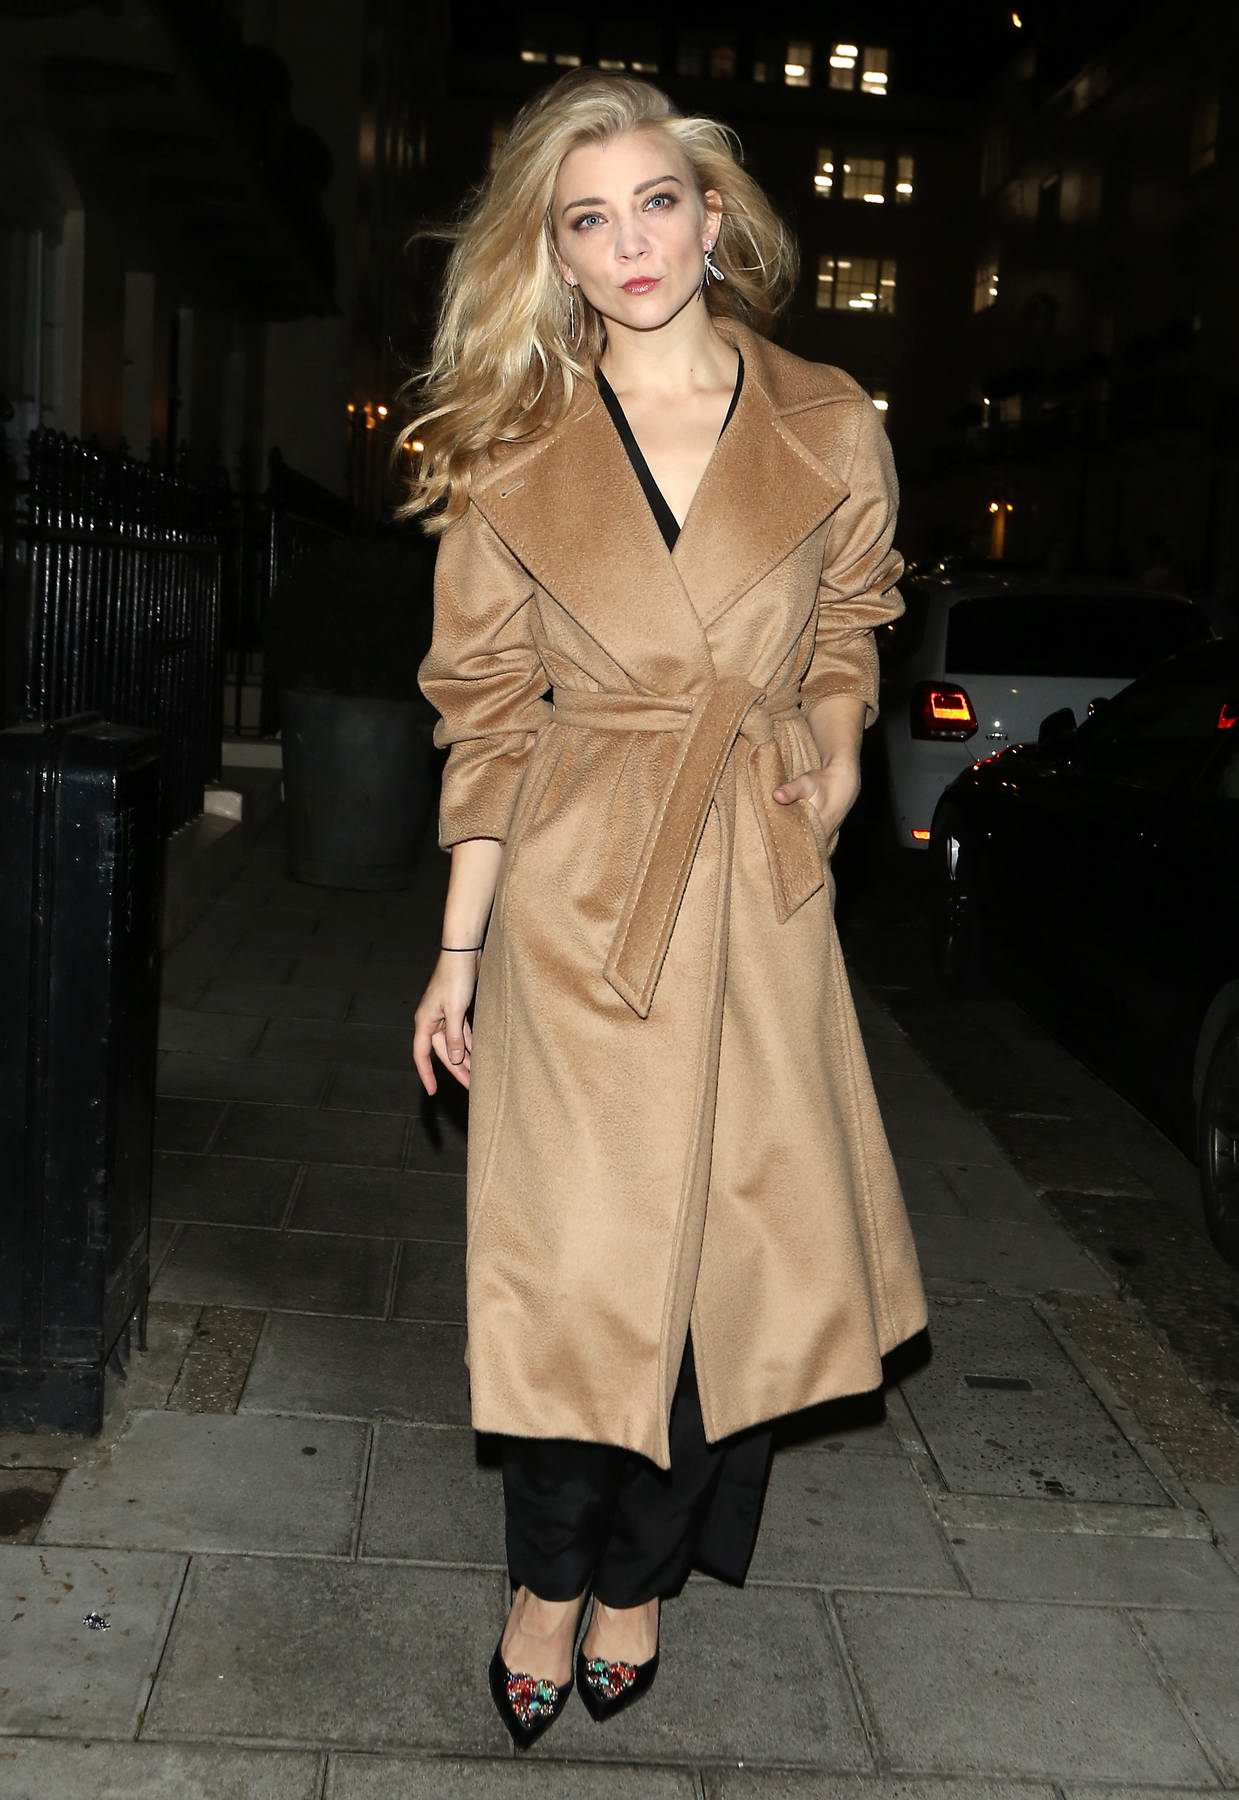 Natalie Dormer leaves the west end play Venus in Fur in London